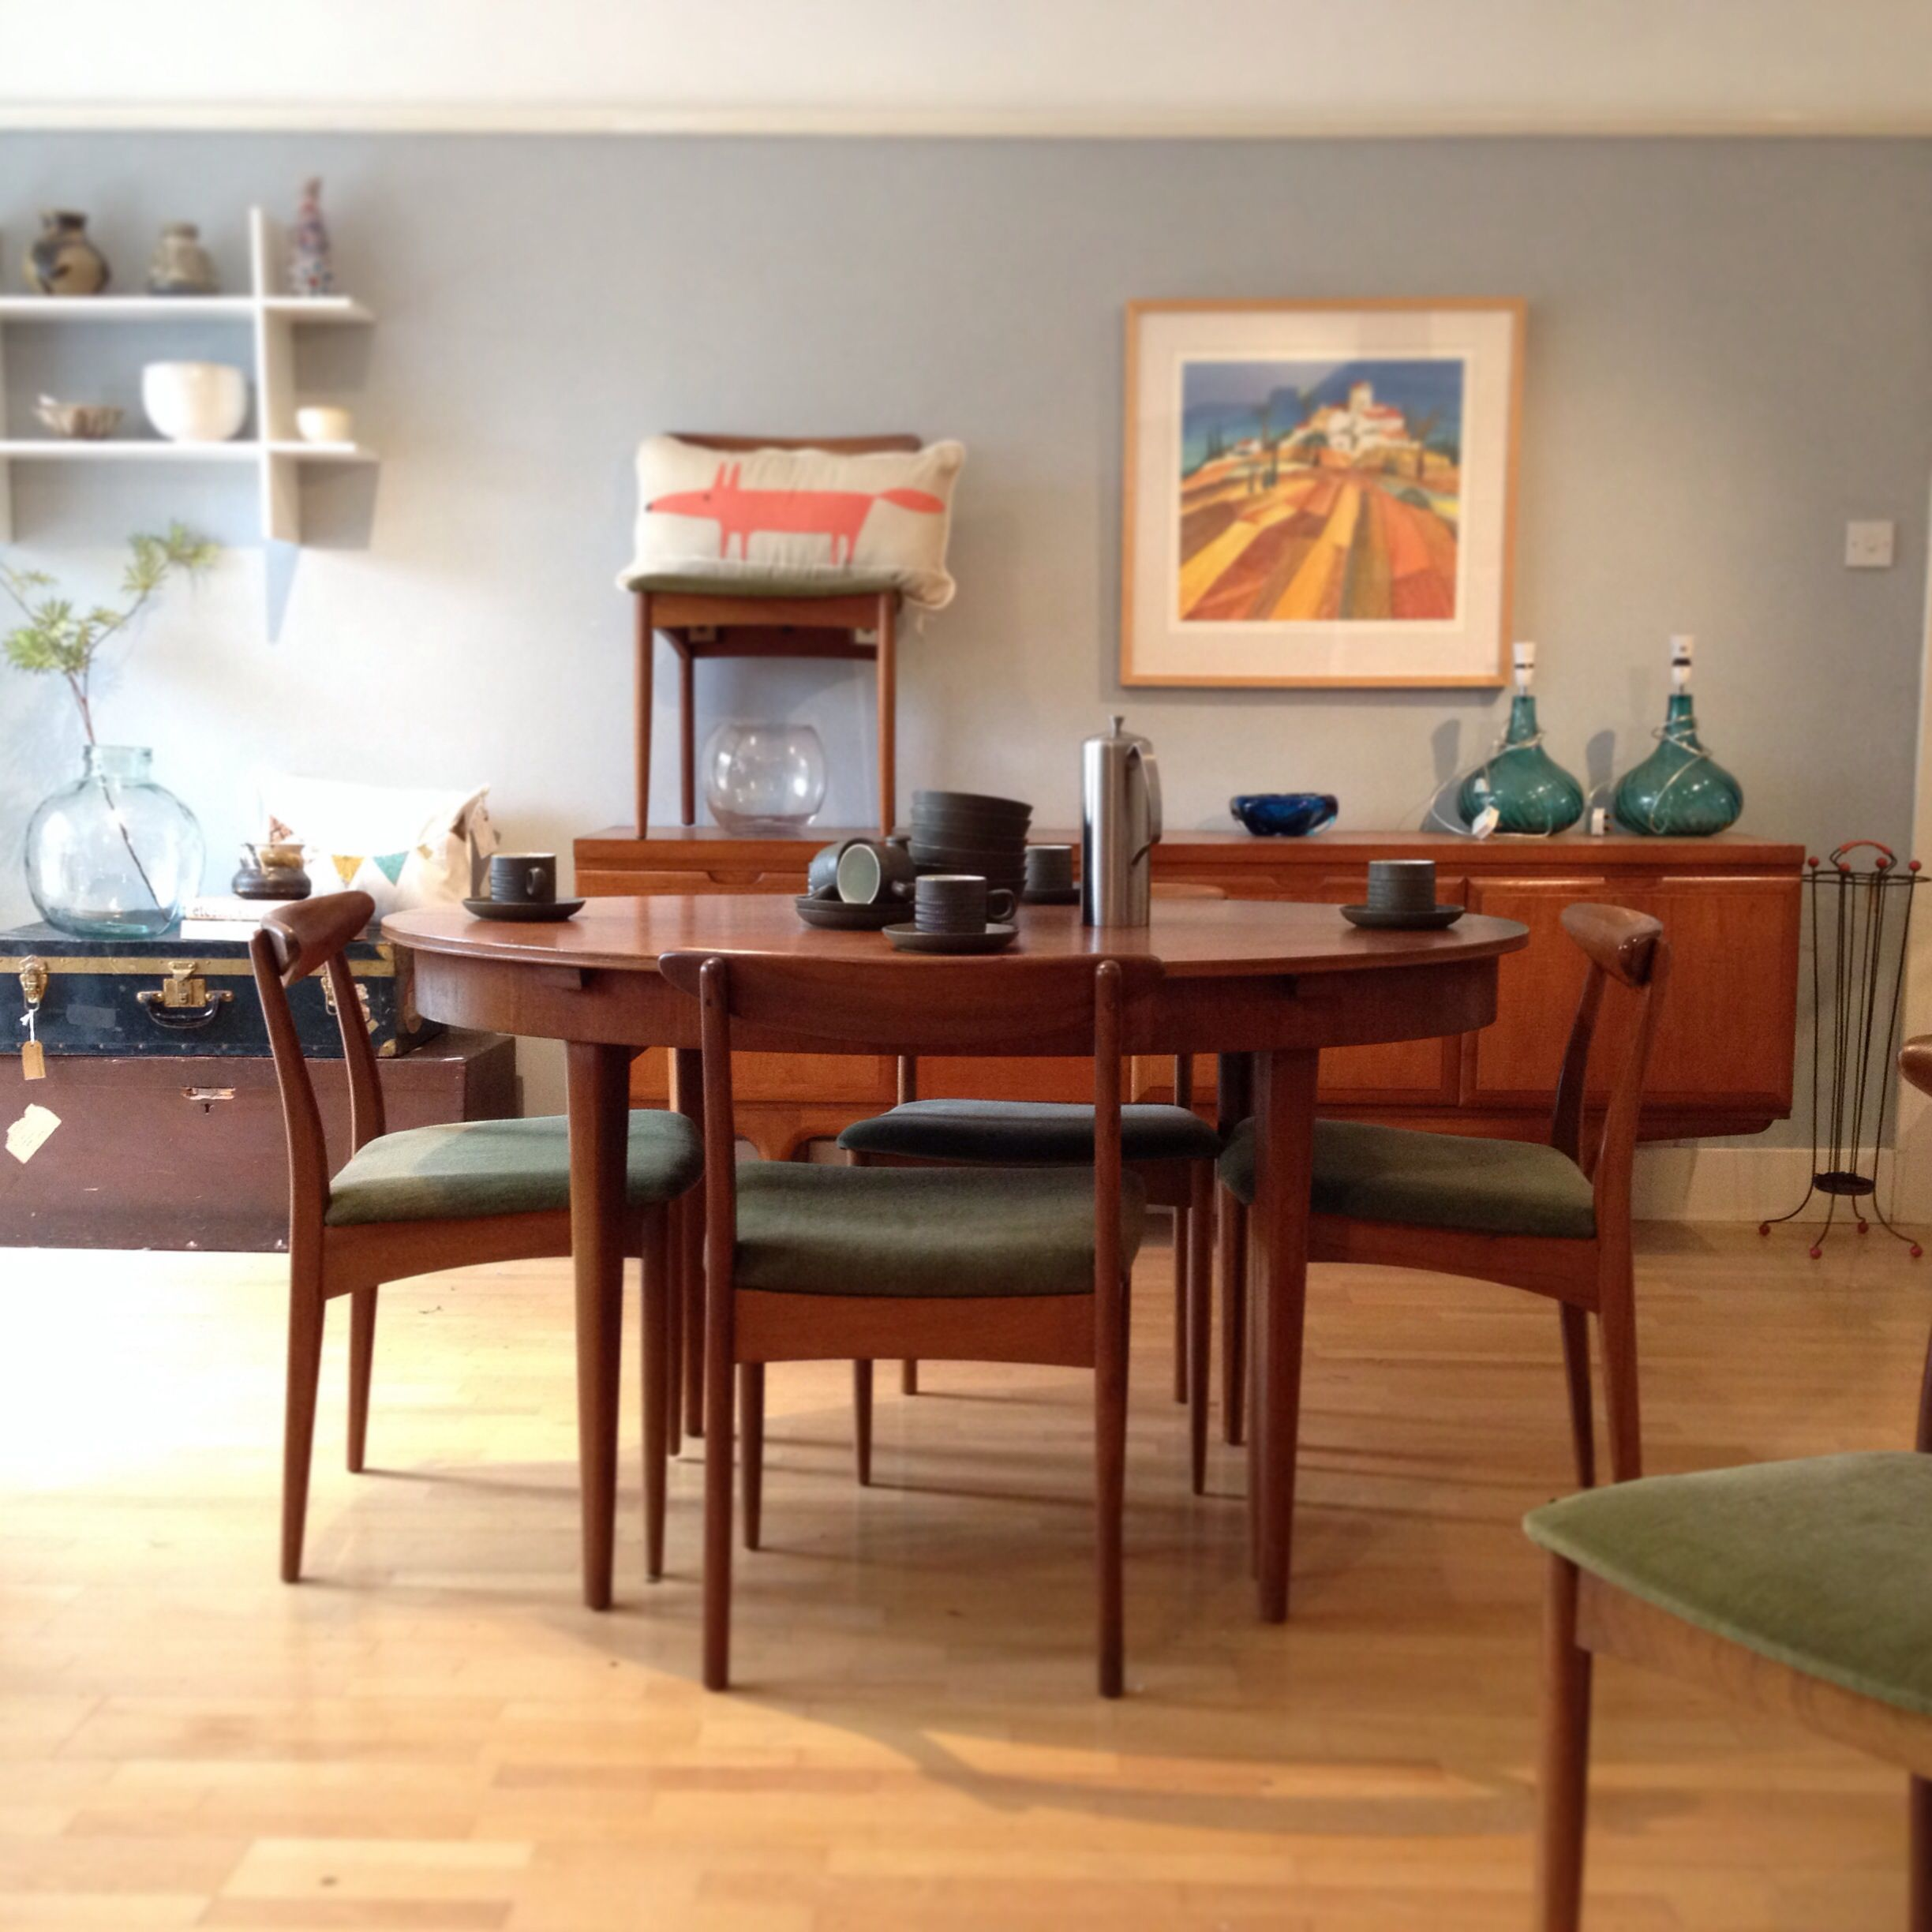 Sixties Retro Danish Style Teak Dining Room Furnitureat Nina's Delectable Retro Dining Room Tables Inspiration